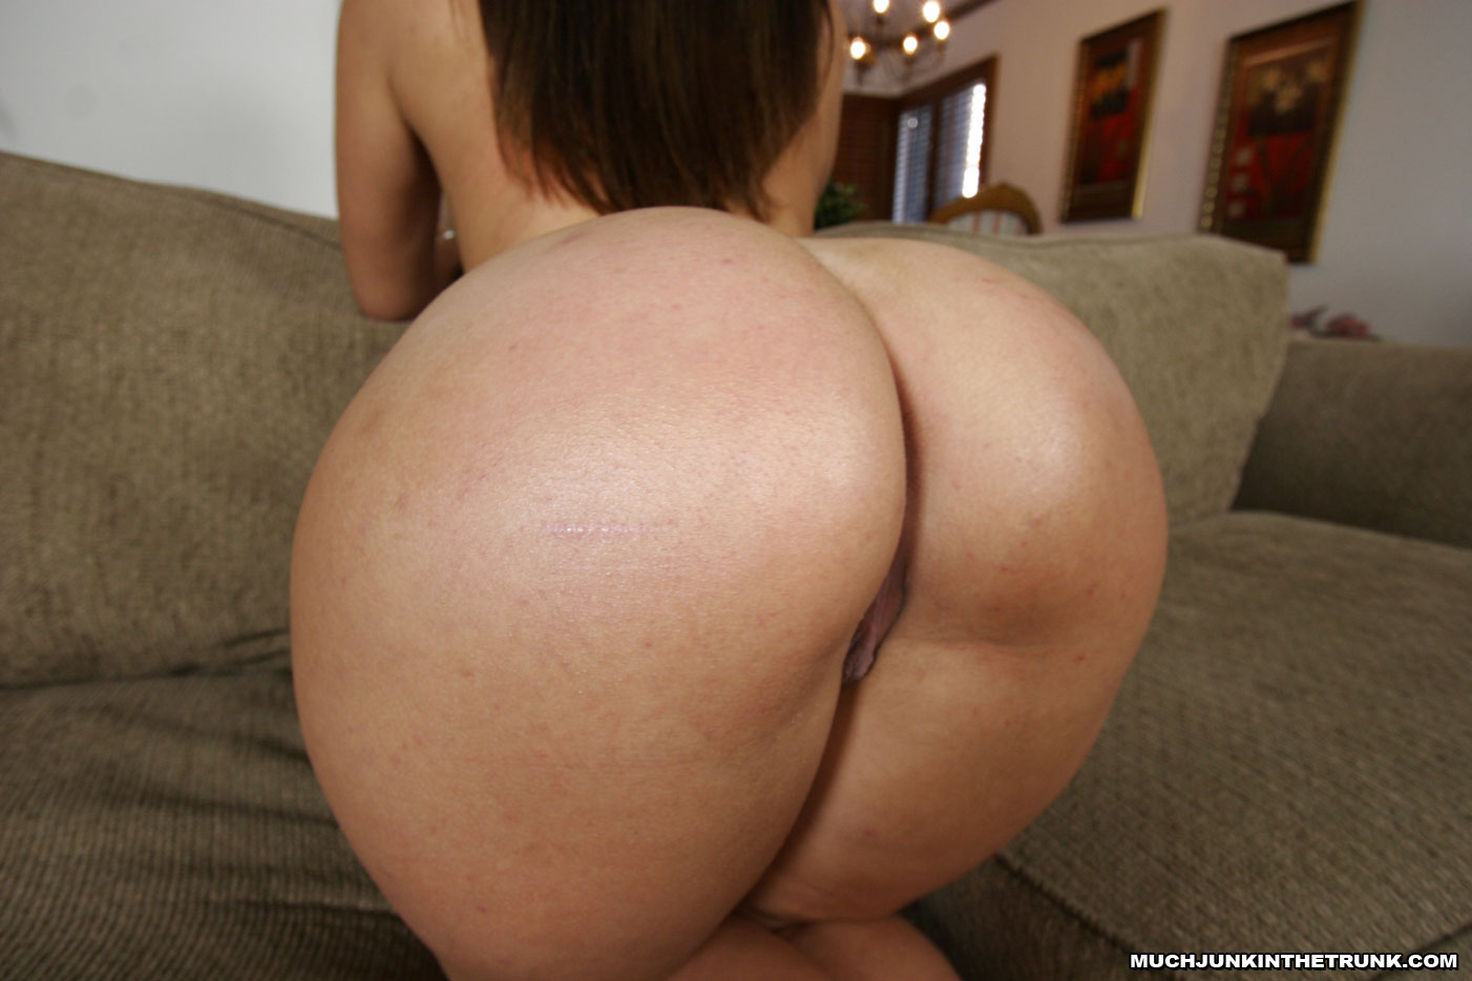 Huge ass sex porn